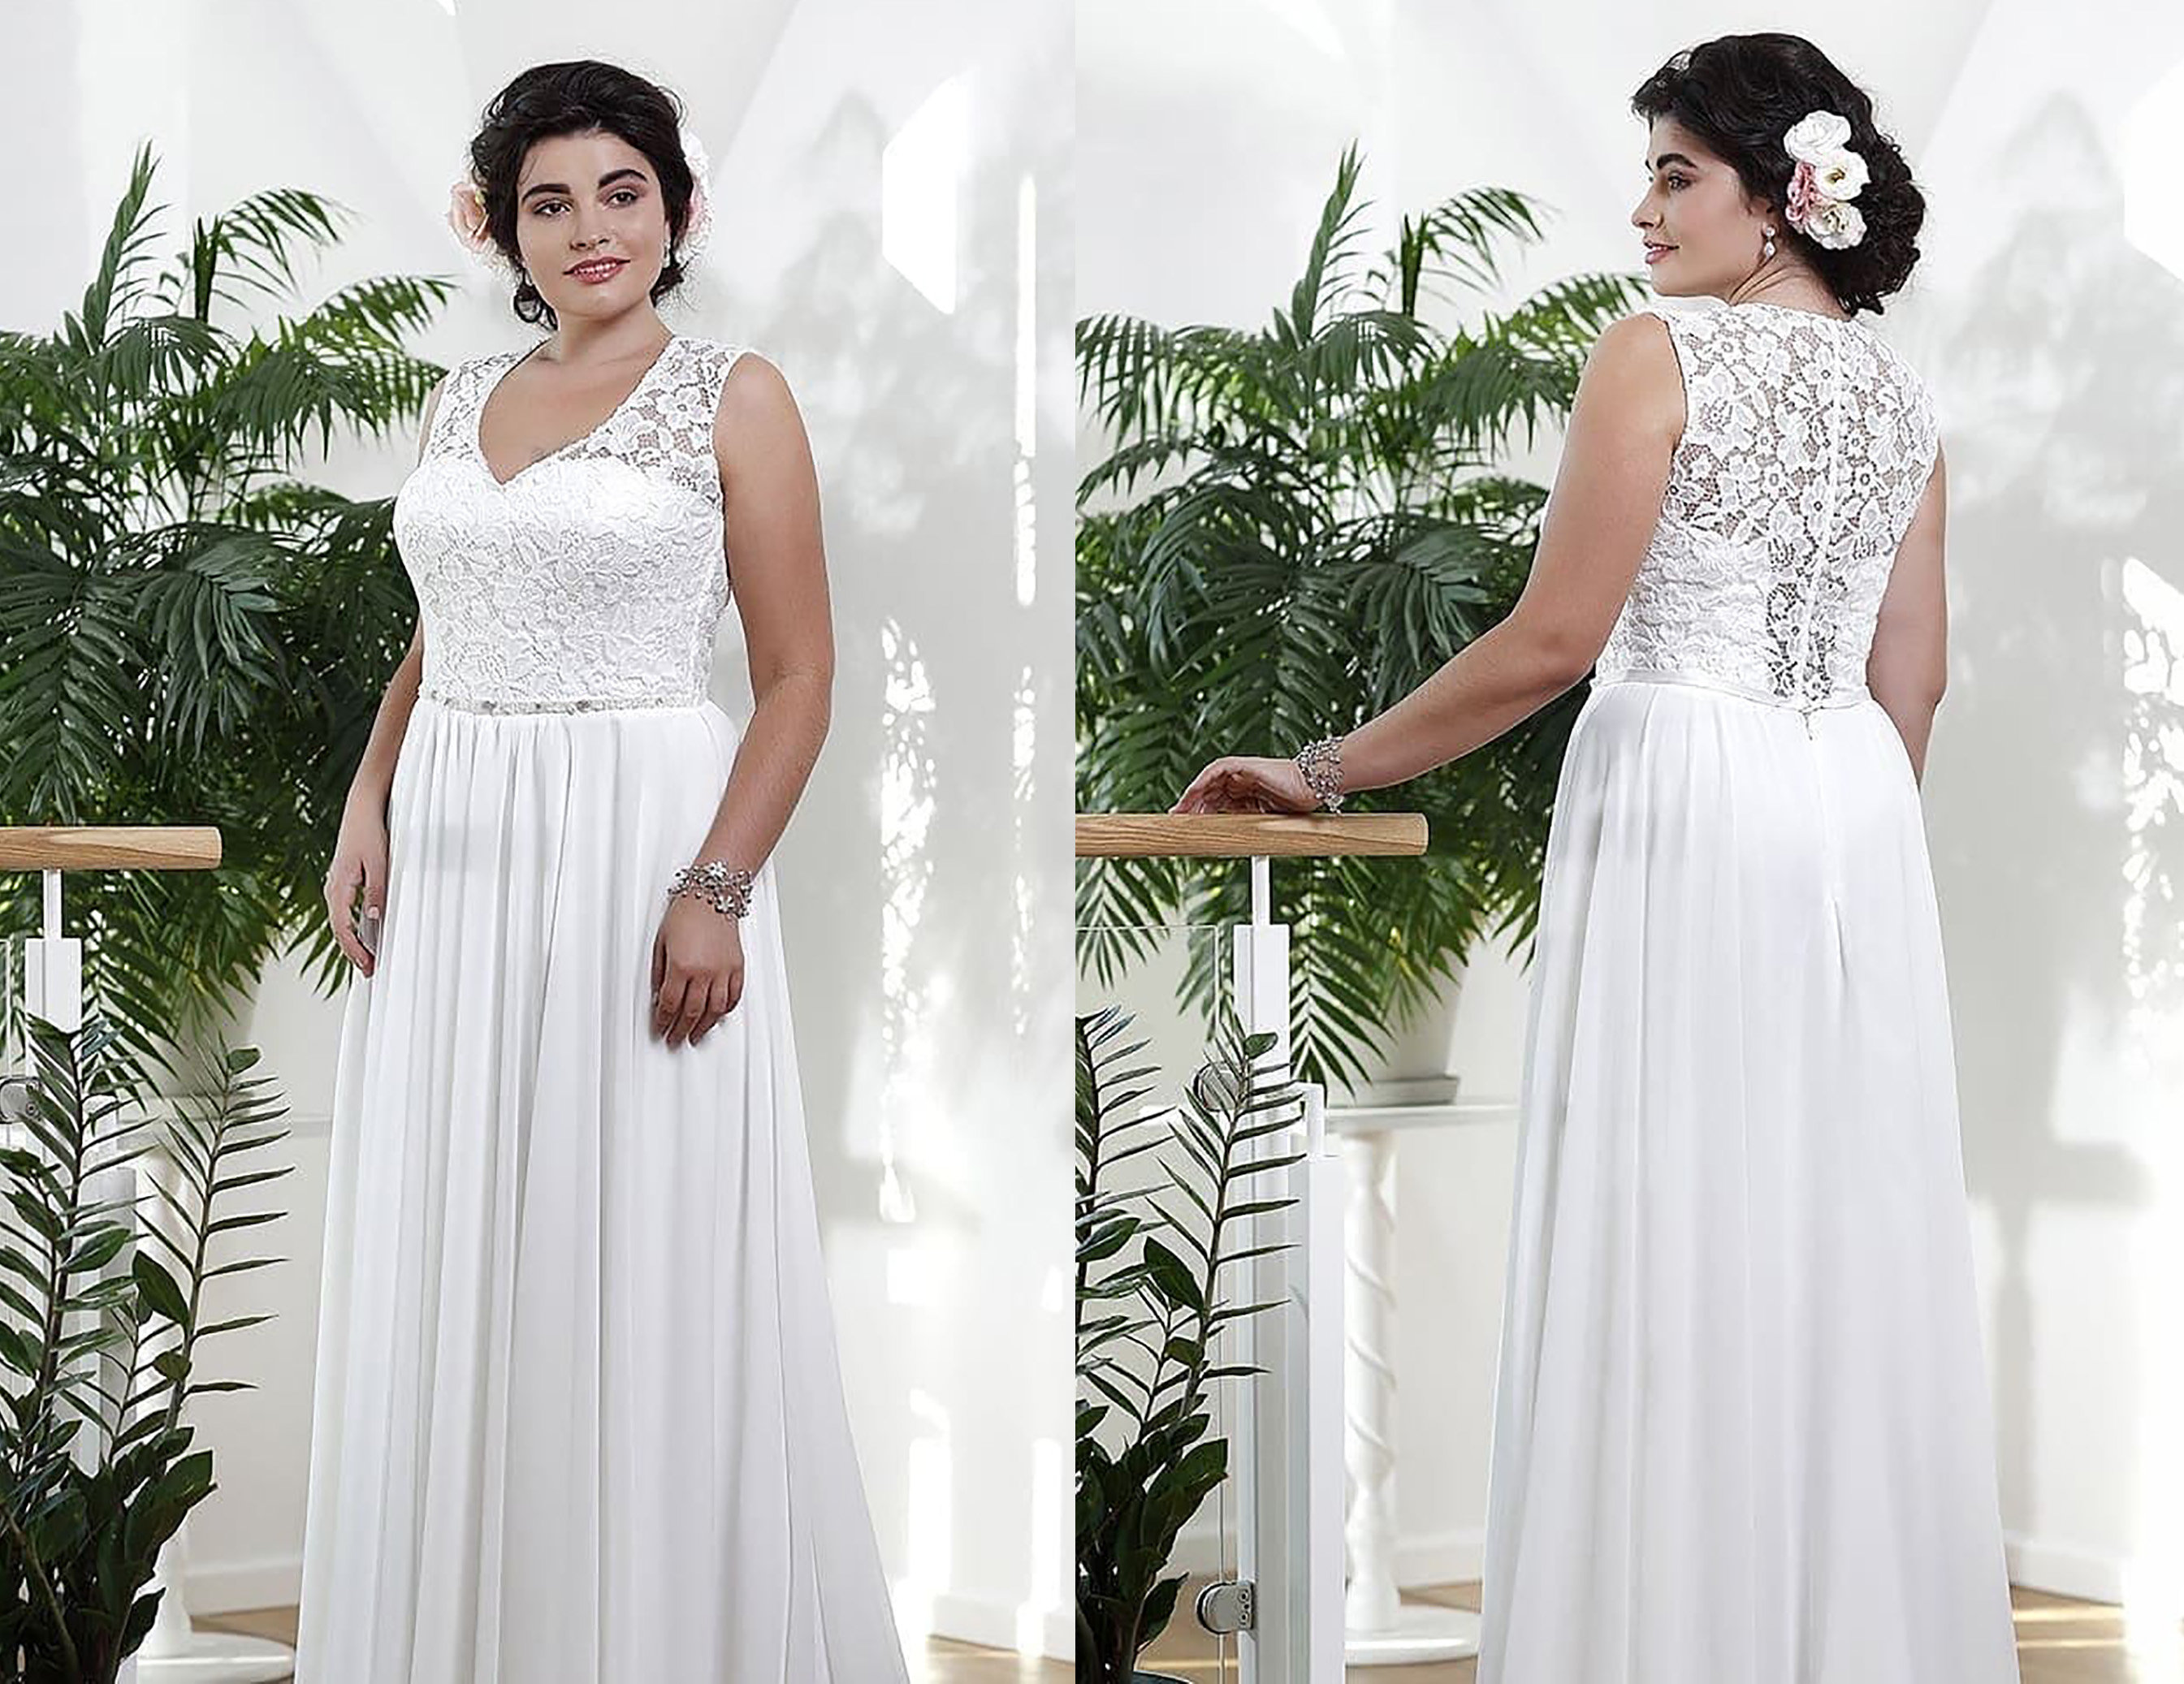 Plus Size Lace Beach Garden Wedding Dress from Curvy Brides